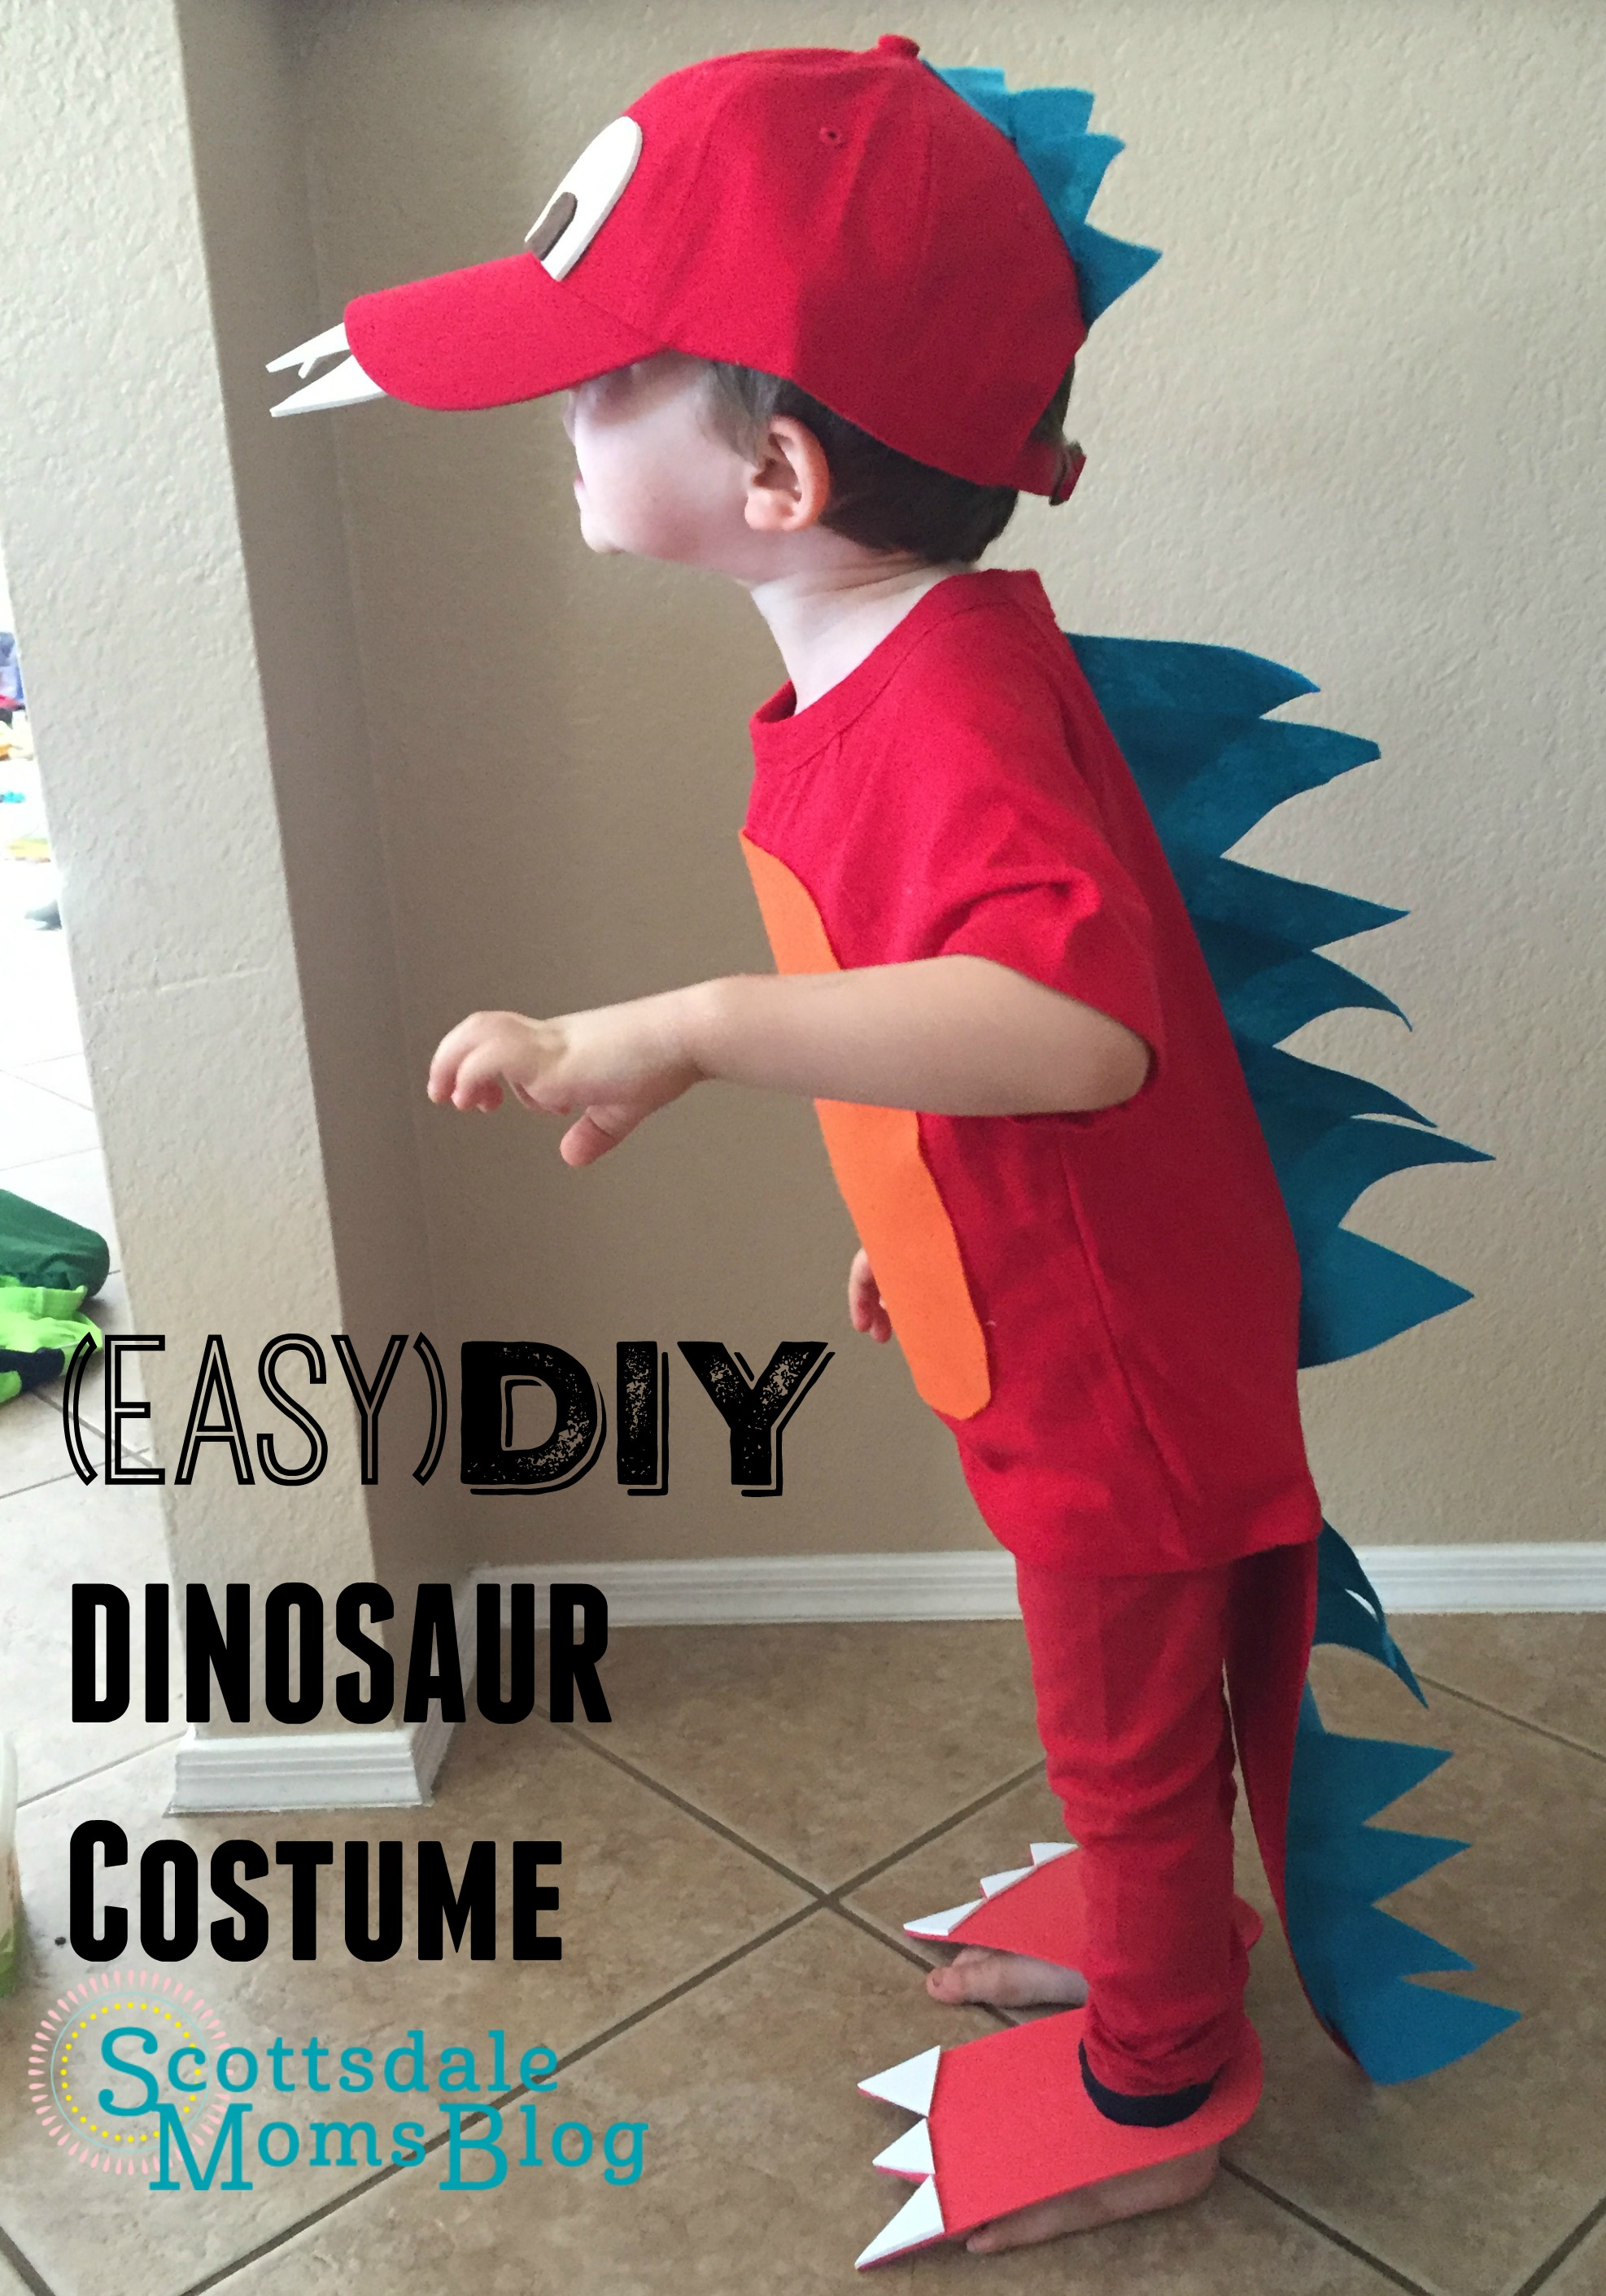 Easy Diy Dinosaur Costume